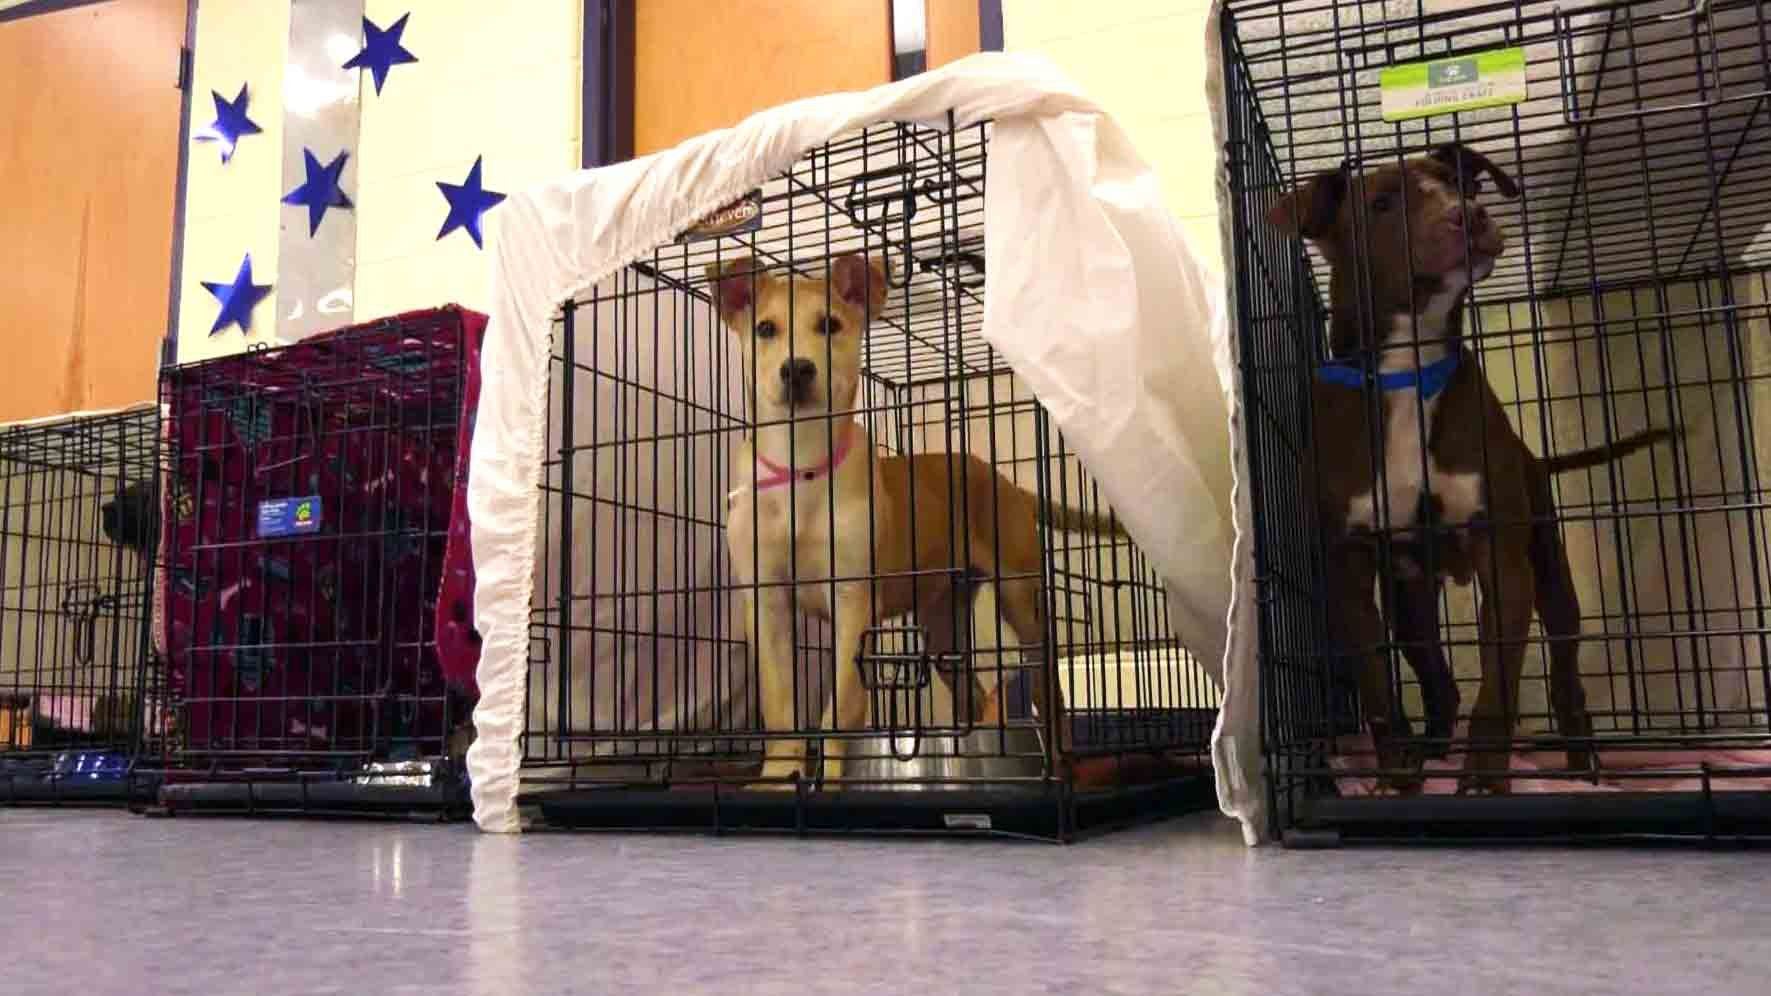 Dozens of Shelter Dogs Arrive in Central Virginia Following Severe Weather in Oklahoma